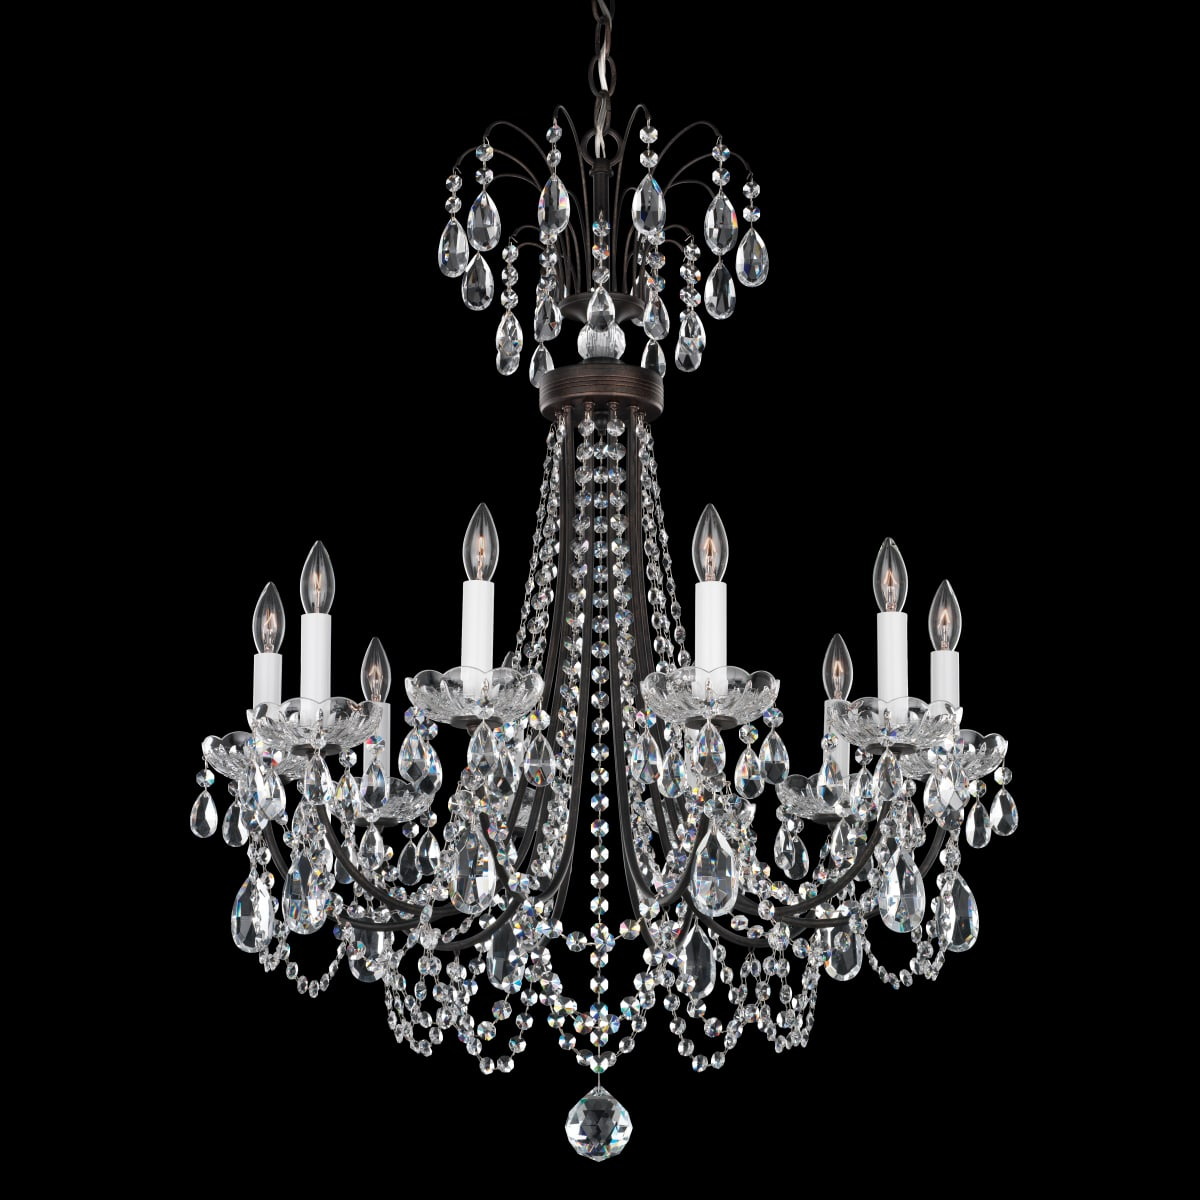 Schonbek Lu0003n 76h Heirloom Bronze Lucia 10 Light 25 Wide Crystal Chandelier With Clear Swarovski Heritage Crystals Lightingshowplace Com